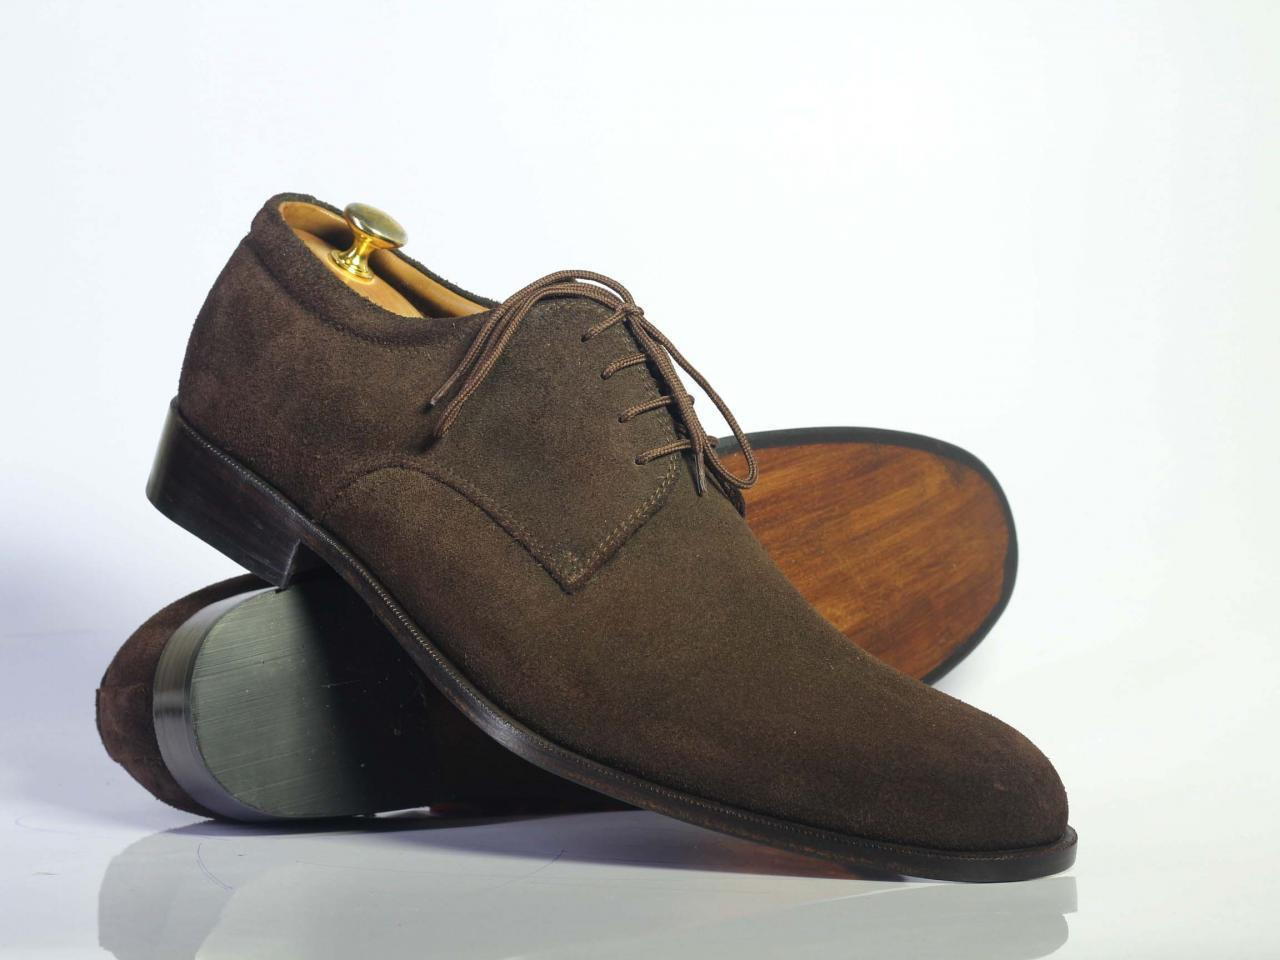 Handmade Men's Chocolate Brown Suede Dress/Formal Oxford Shoes